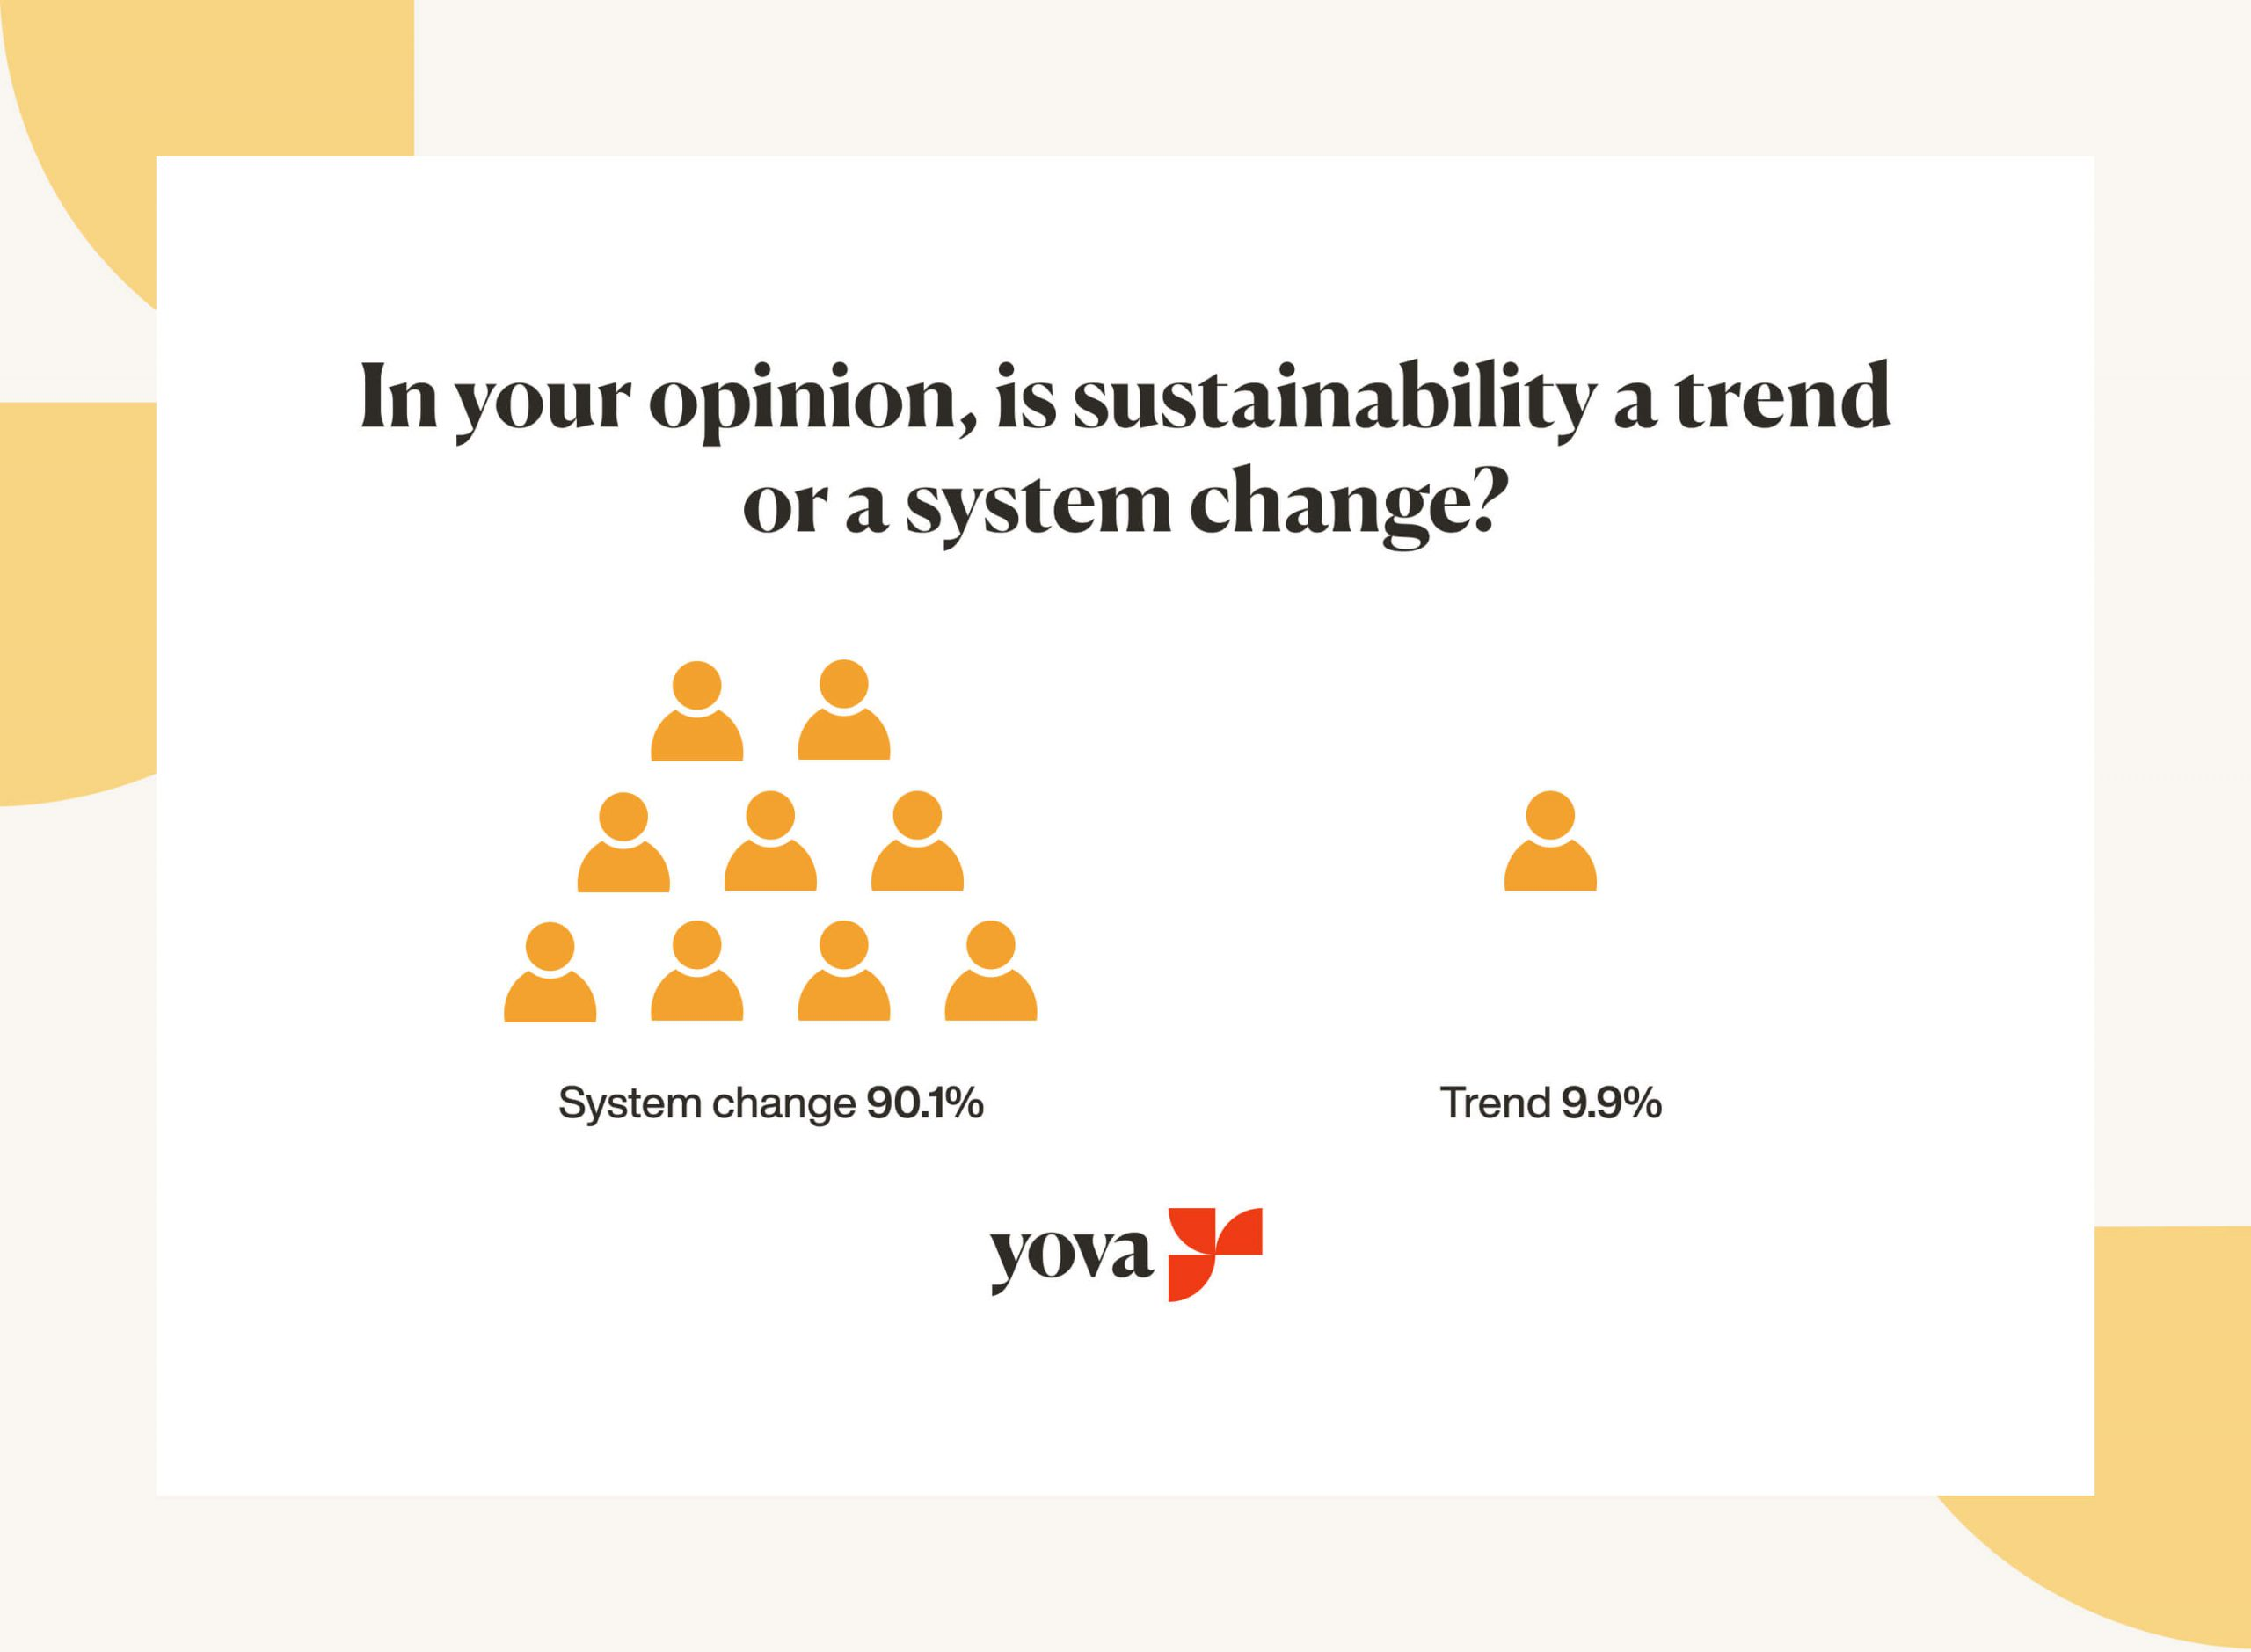 Graph showing if sustainability is a trend or systemic change